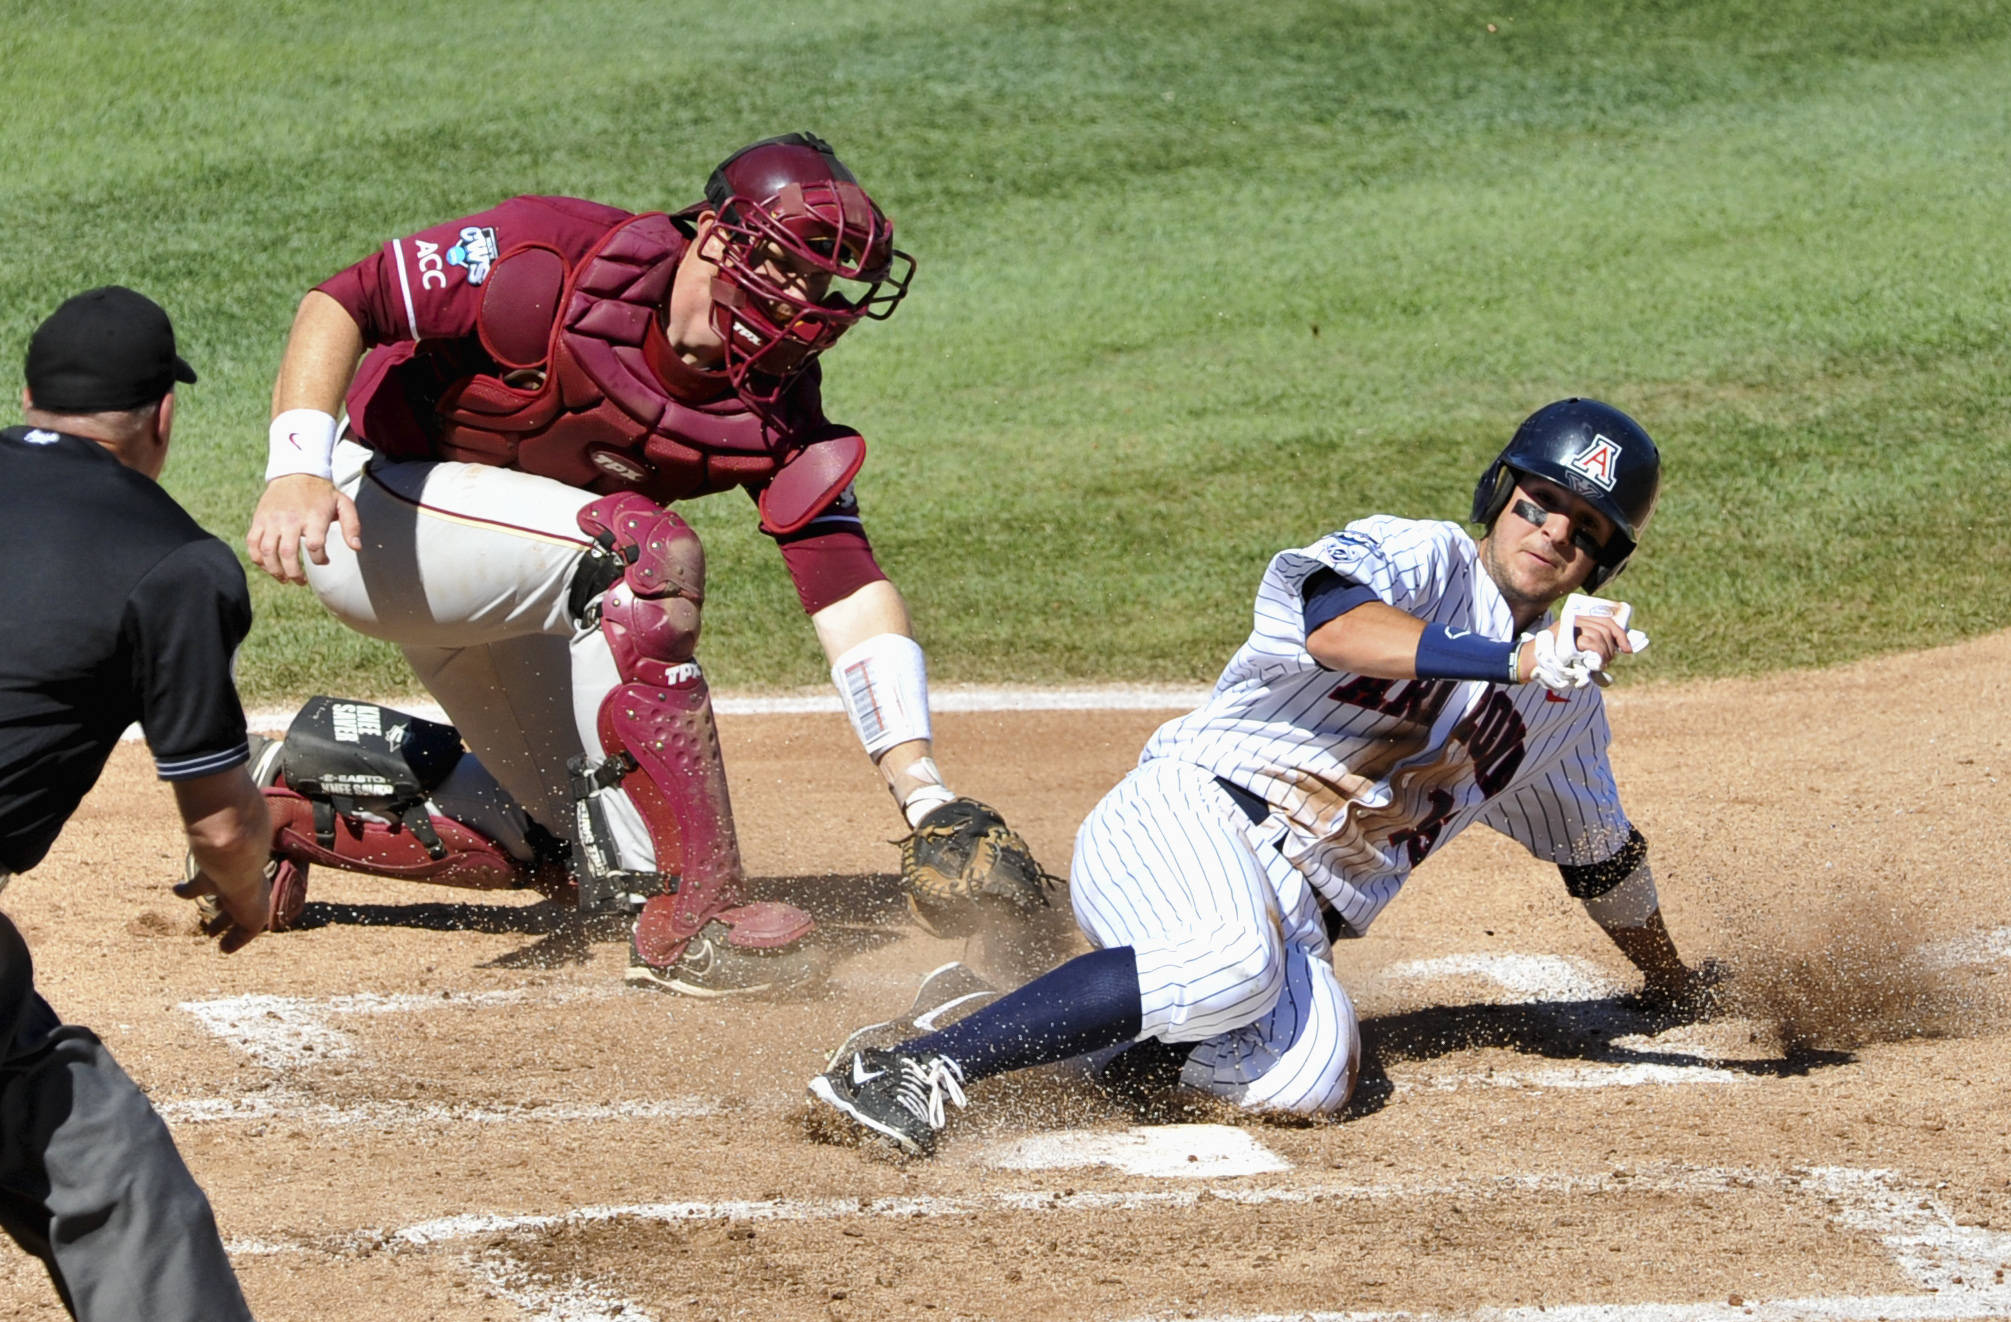 Florida State catcher Stephen McGee is unable to tag out Arizona's Joseph Maggi, right, as he scores on a single hit by Trent Gilbert in the first inning. (AP Photo/Dave Weaver)